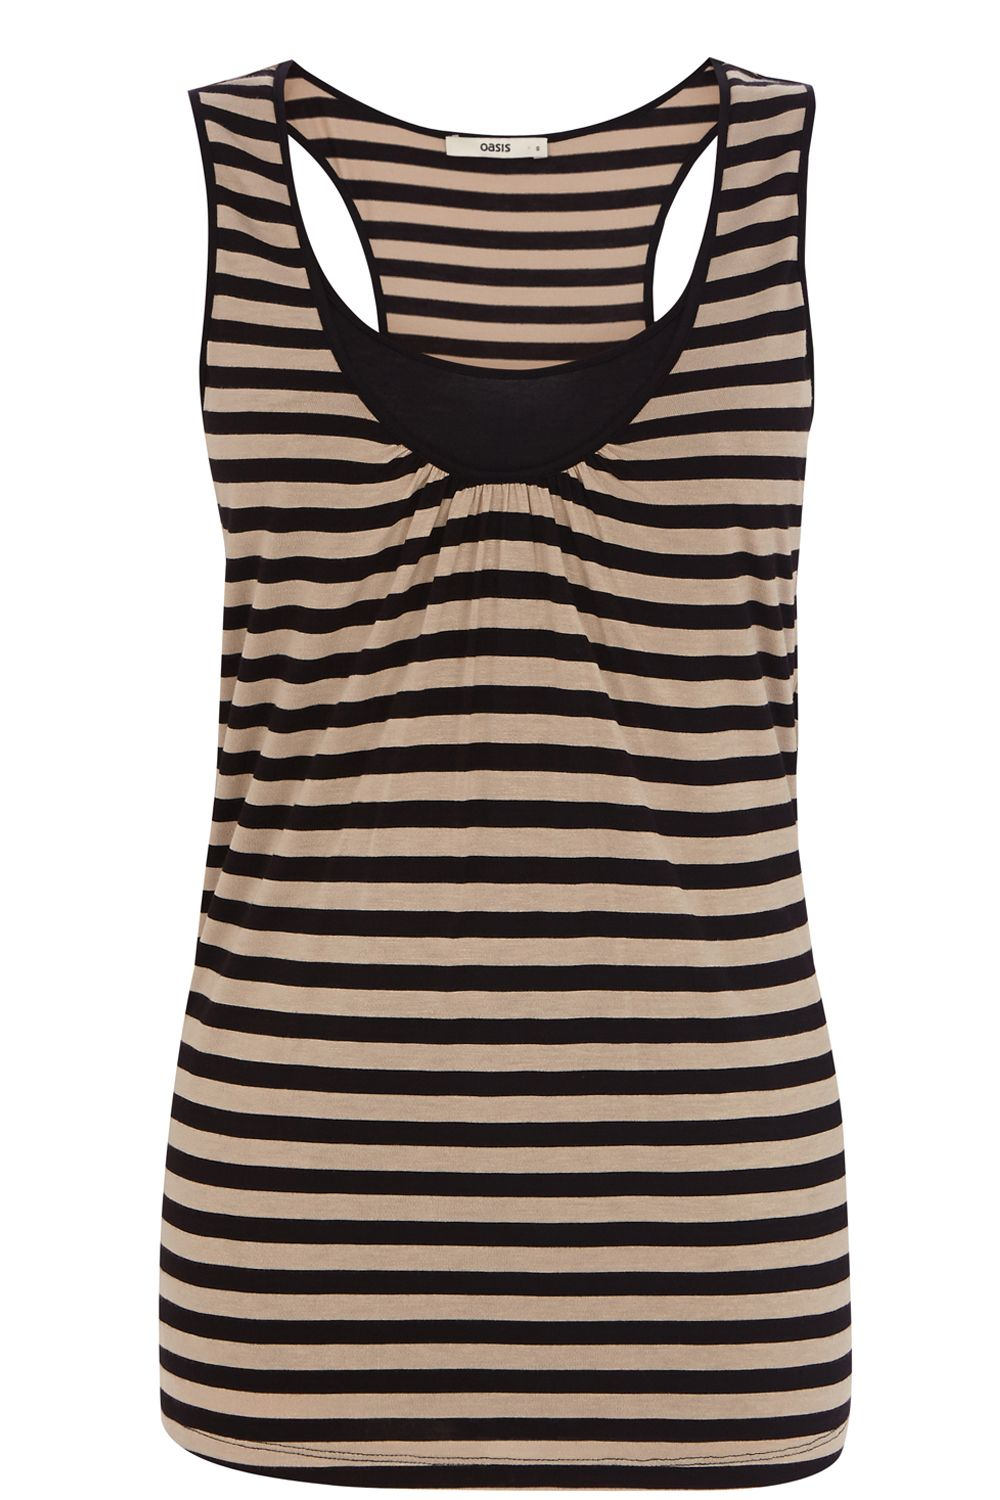 Stripe ll double layer vest top